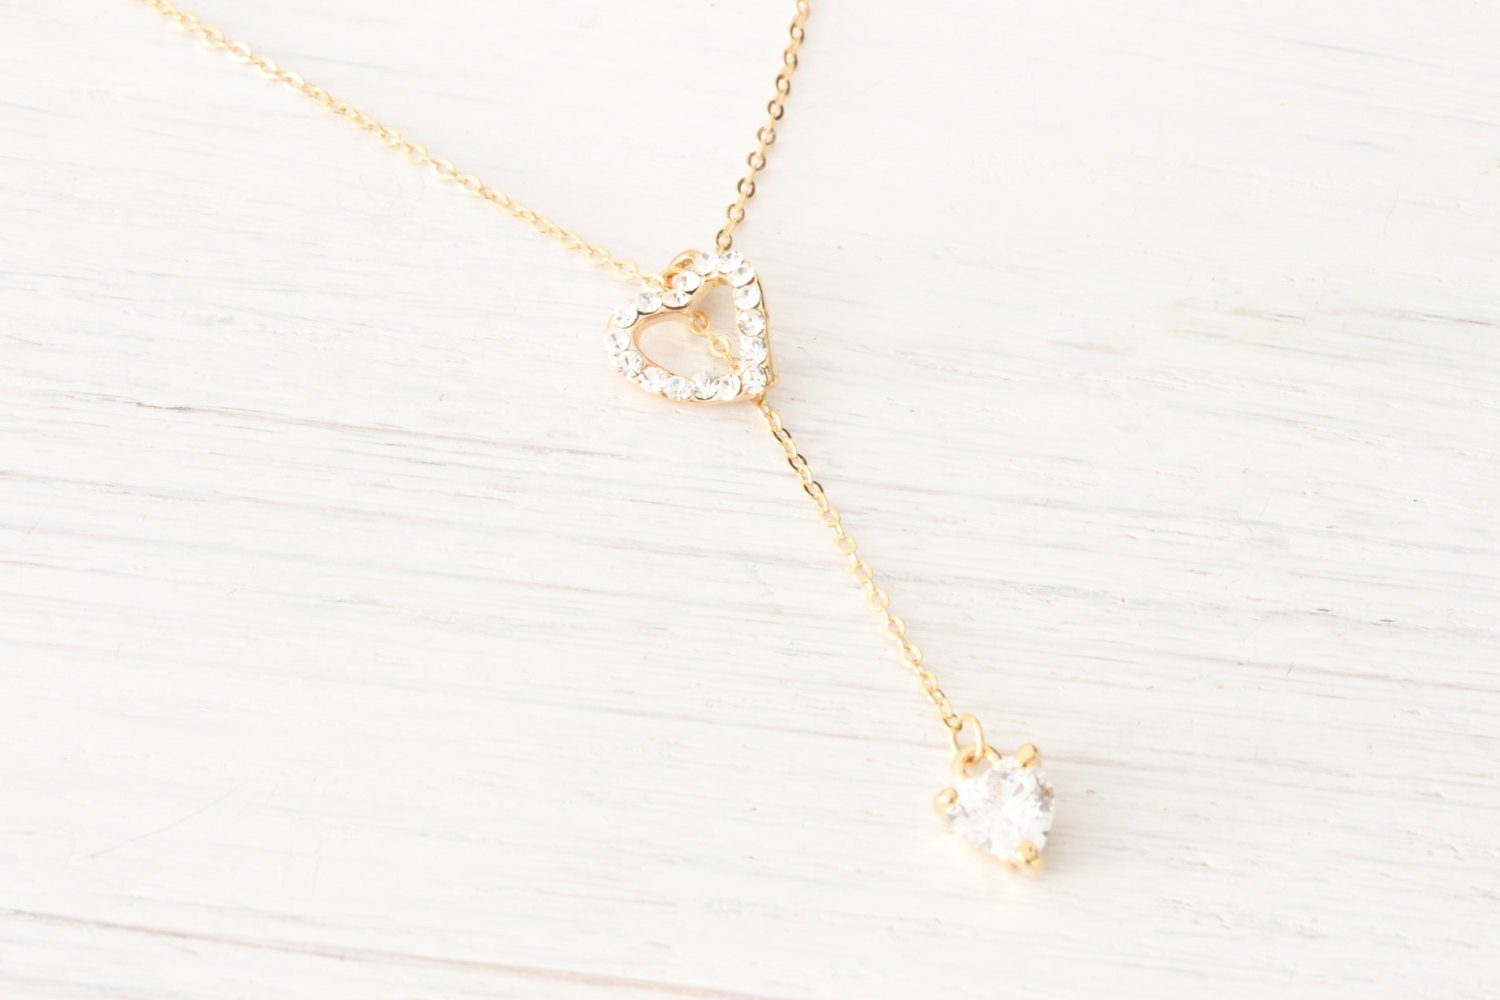 Dainty Rose Gold Lariat Y Necklace Heart Rhinestone Crystals - product_type] - Beautiz